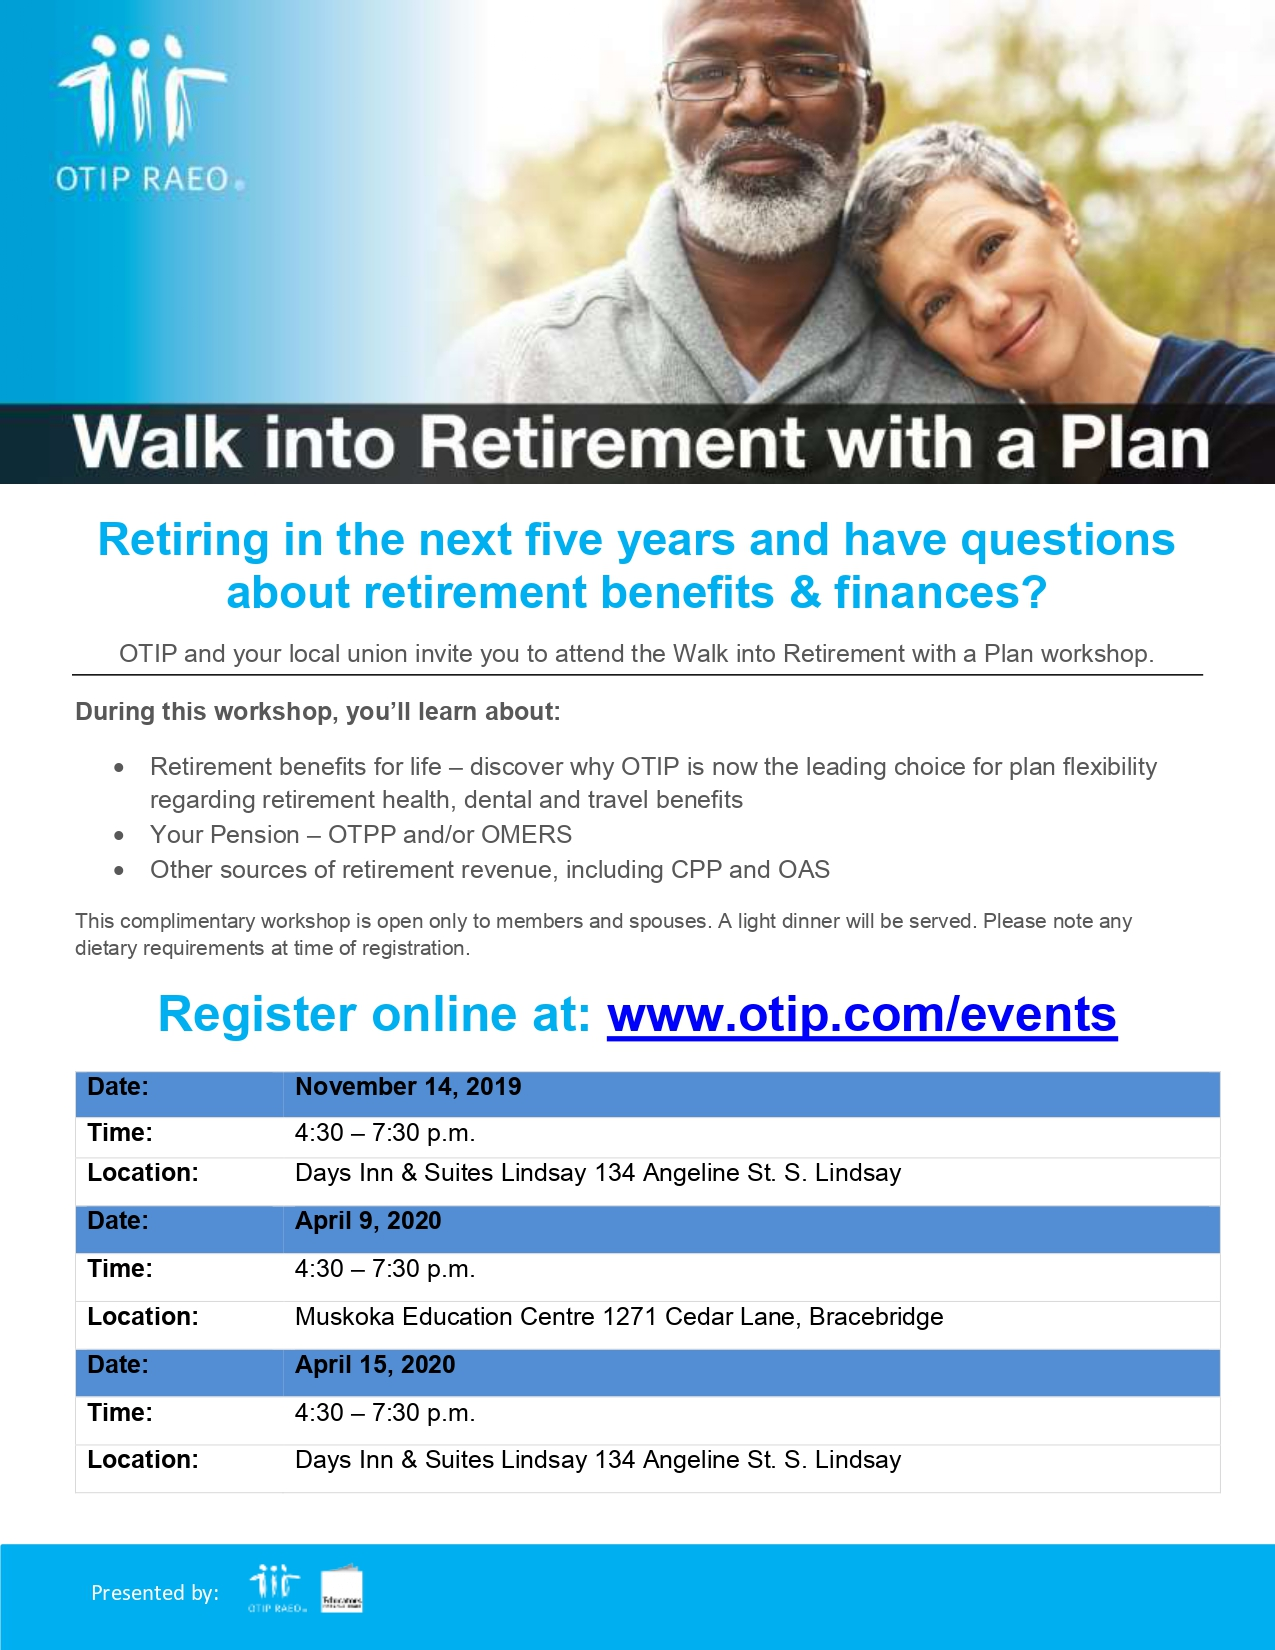 Retirement workshop - Bracebridge @ Muskoka Education Centre | Bracebridge | Ontario | Canada